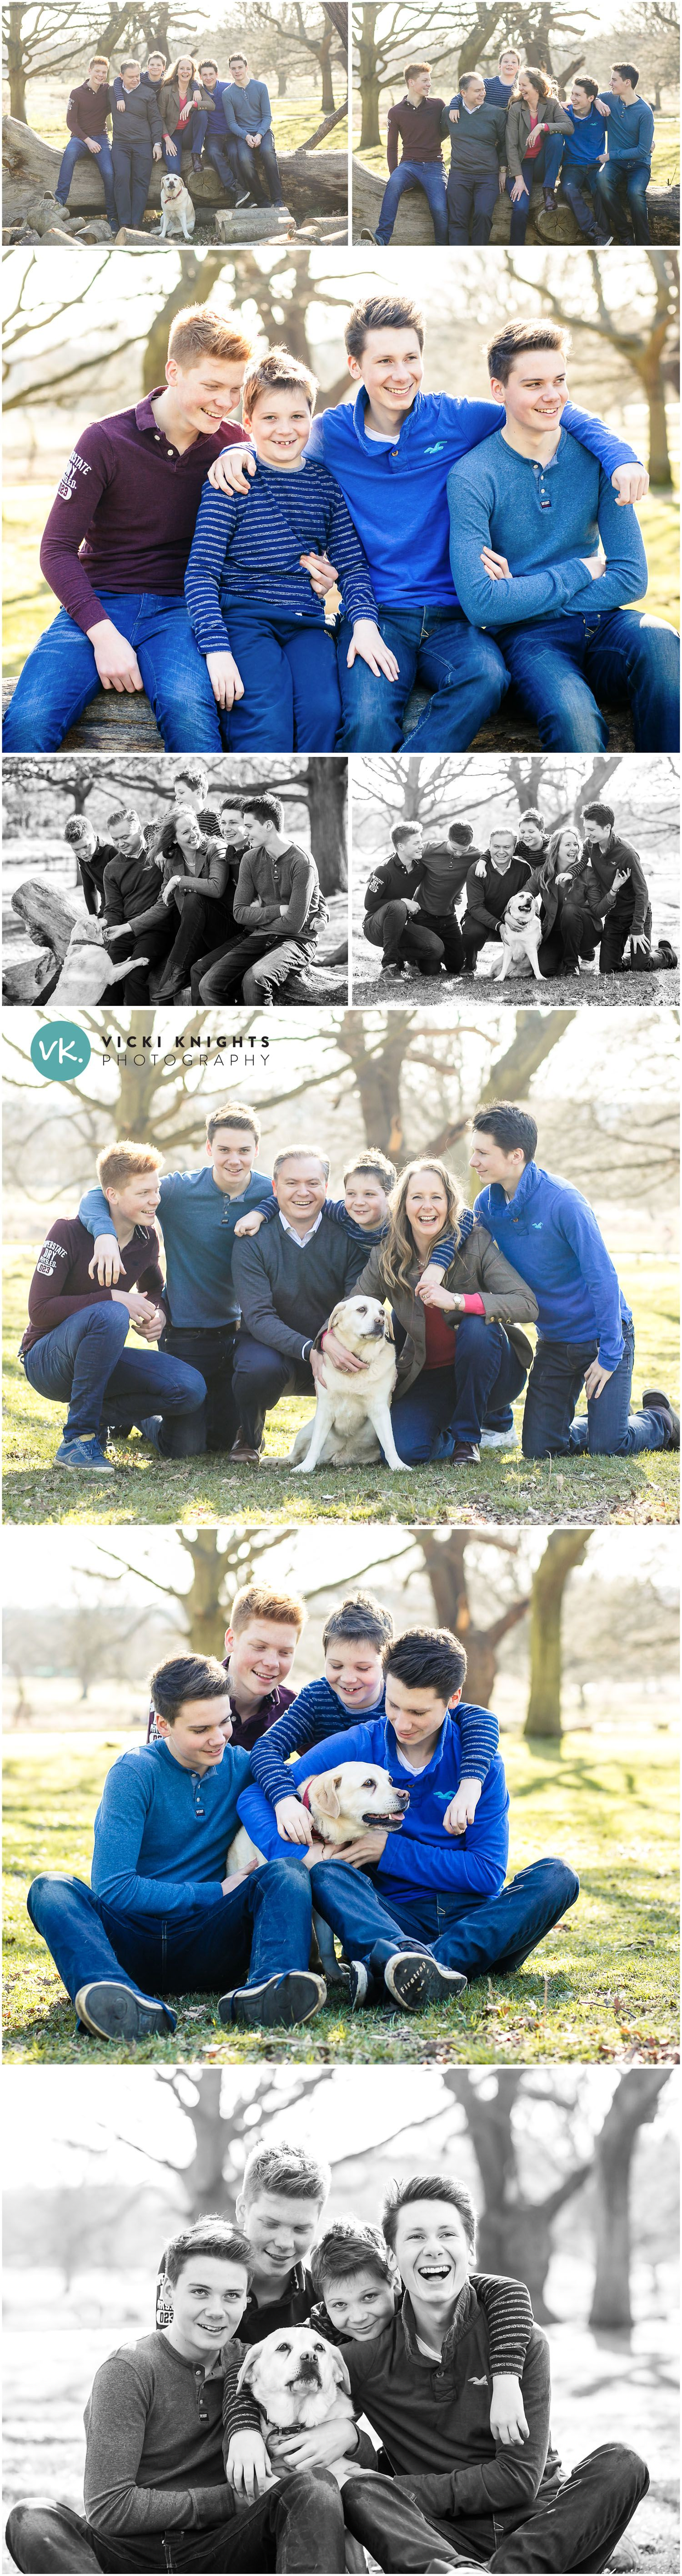 A family photo shoot outdoors with teenagers Family